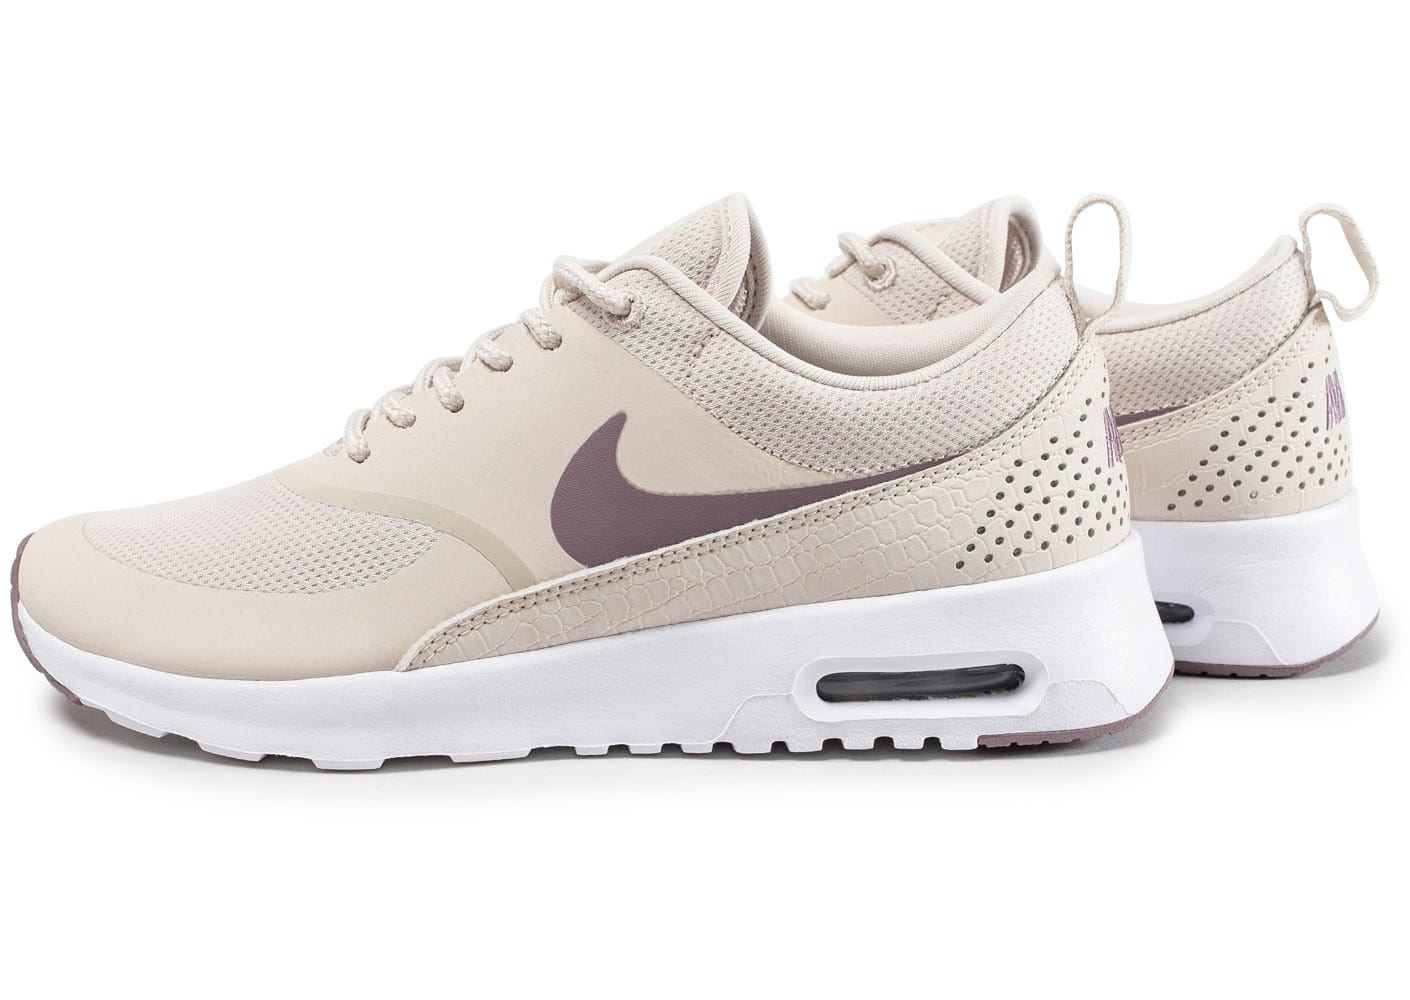 nike air max thea beige chaussures black friday chausport. Black Bedroom Furniture Sets. Home Design Ideas